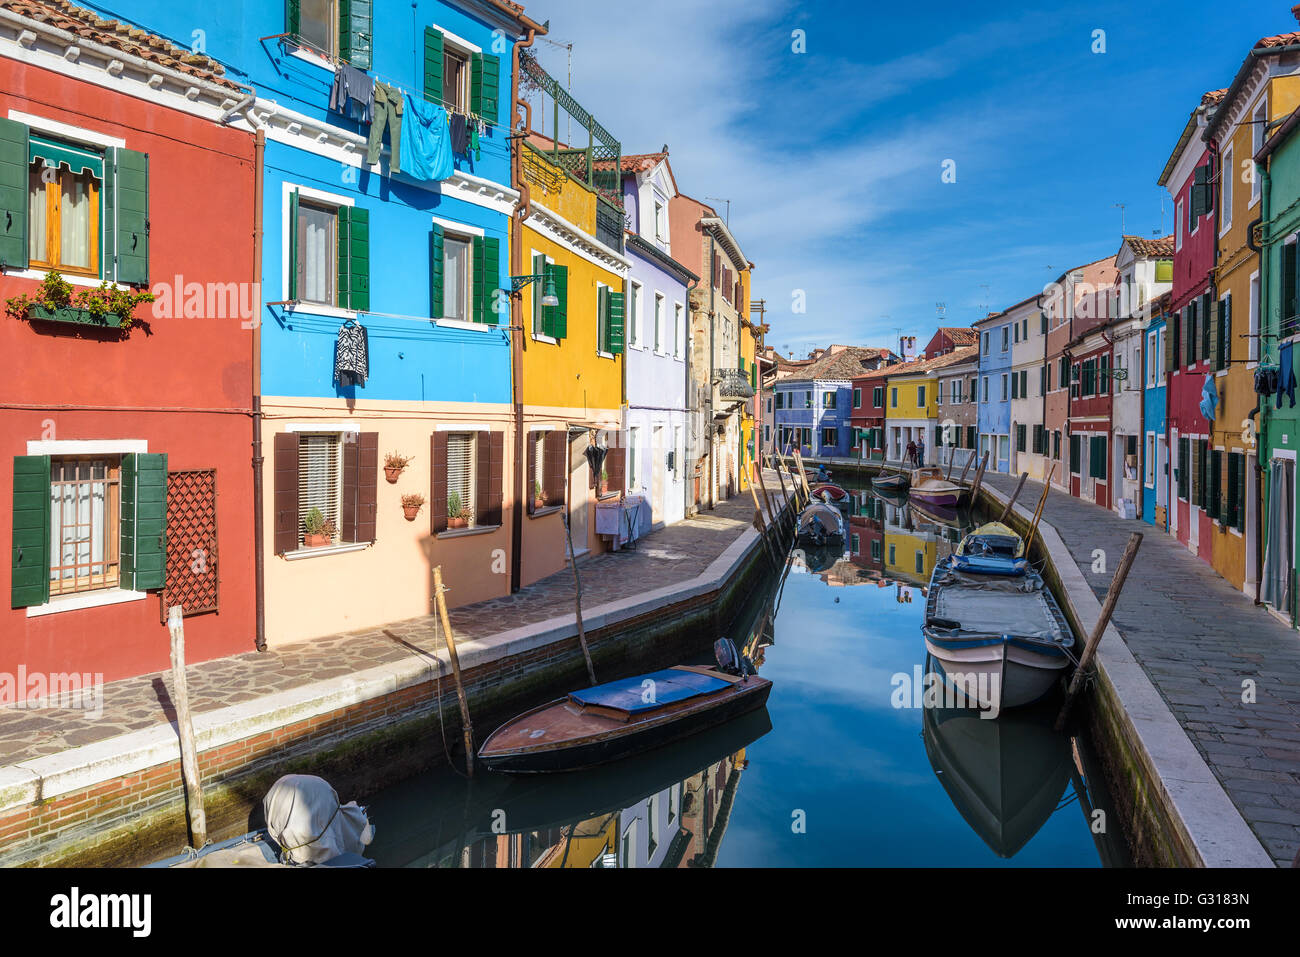 Unusually painted buildings, boats parked in the canals, the town of Burano. - Stock Image